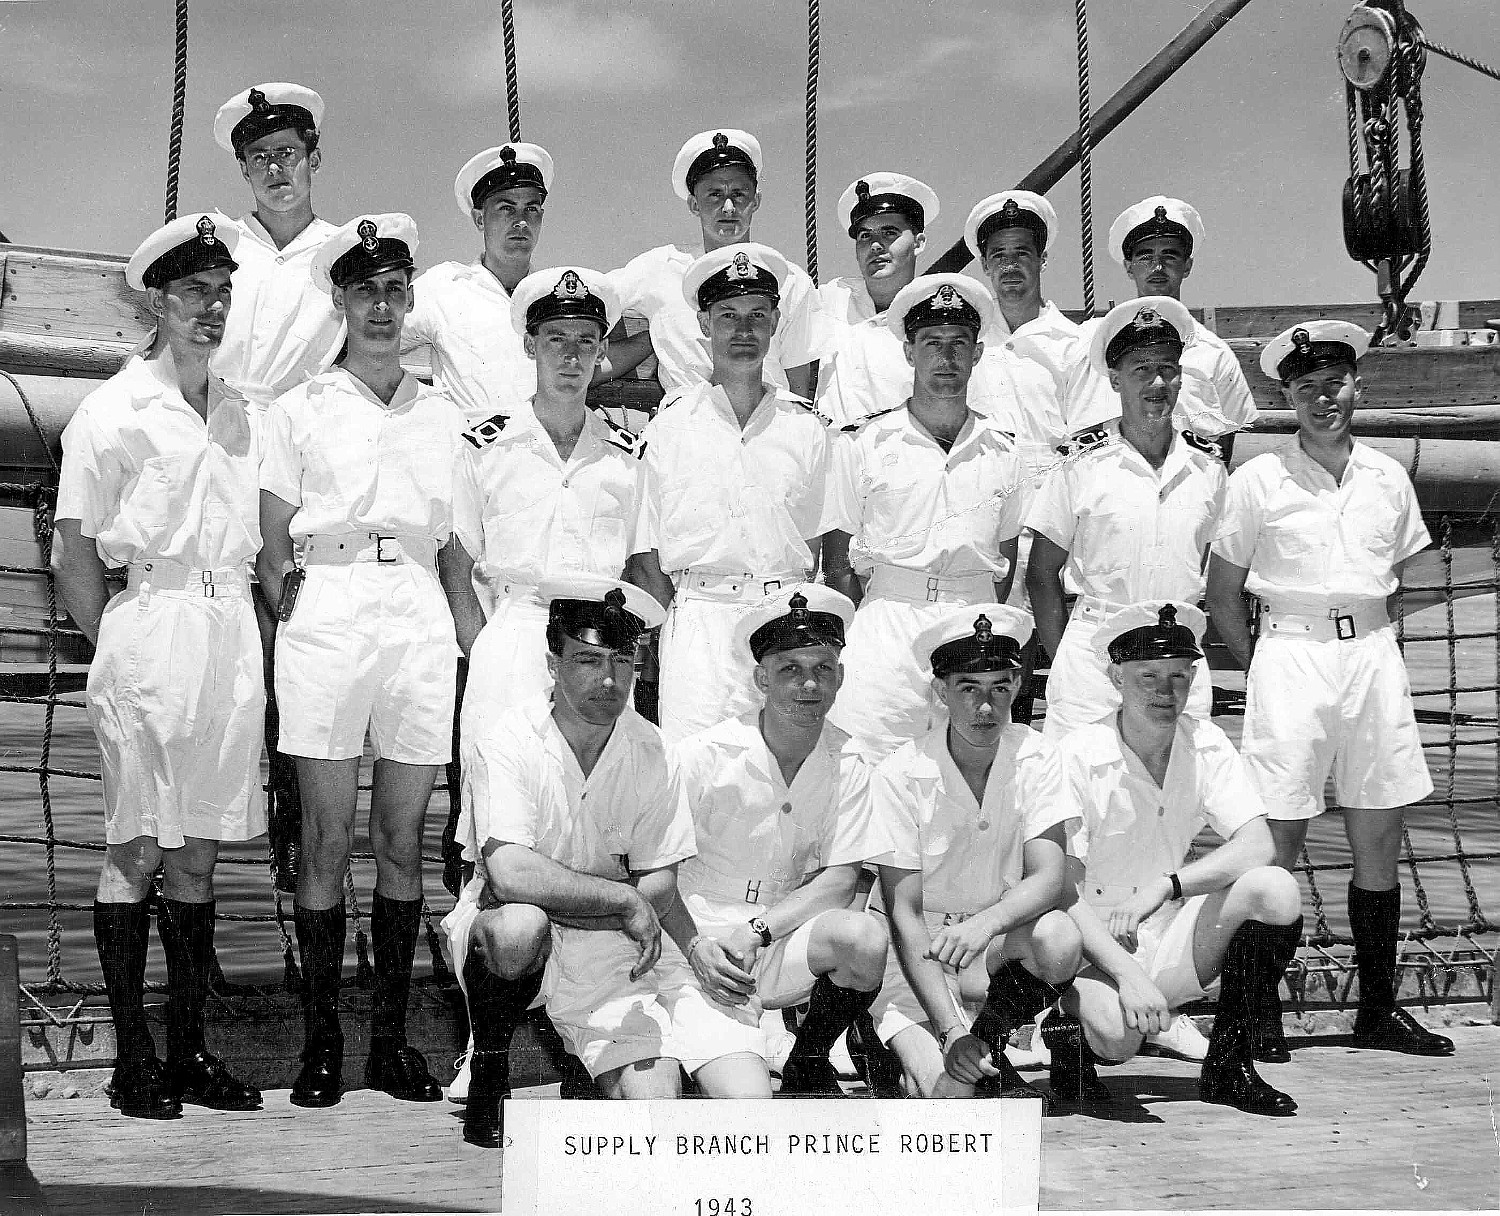 Royal Canadian Navy : HMCS Prince Robert, Supply Branch, Officers and Petty Officers